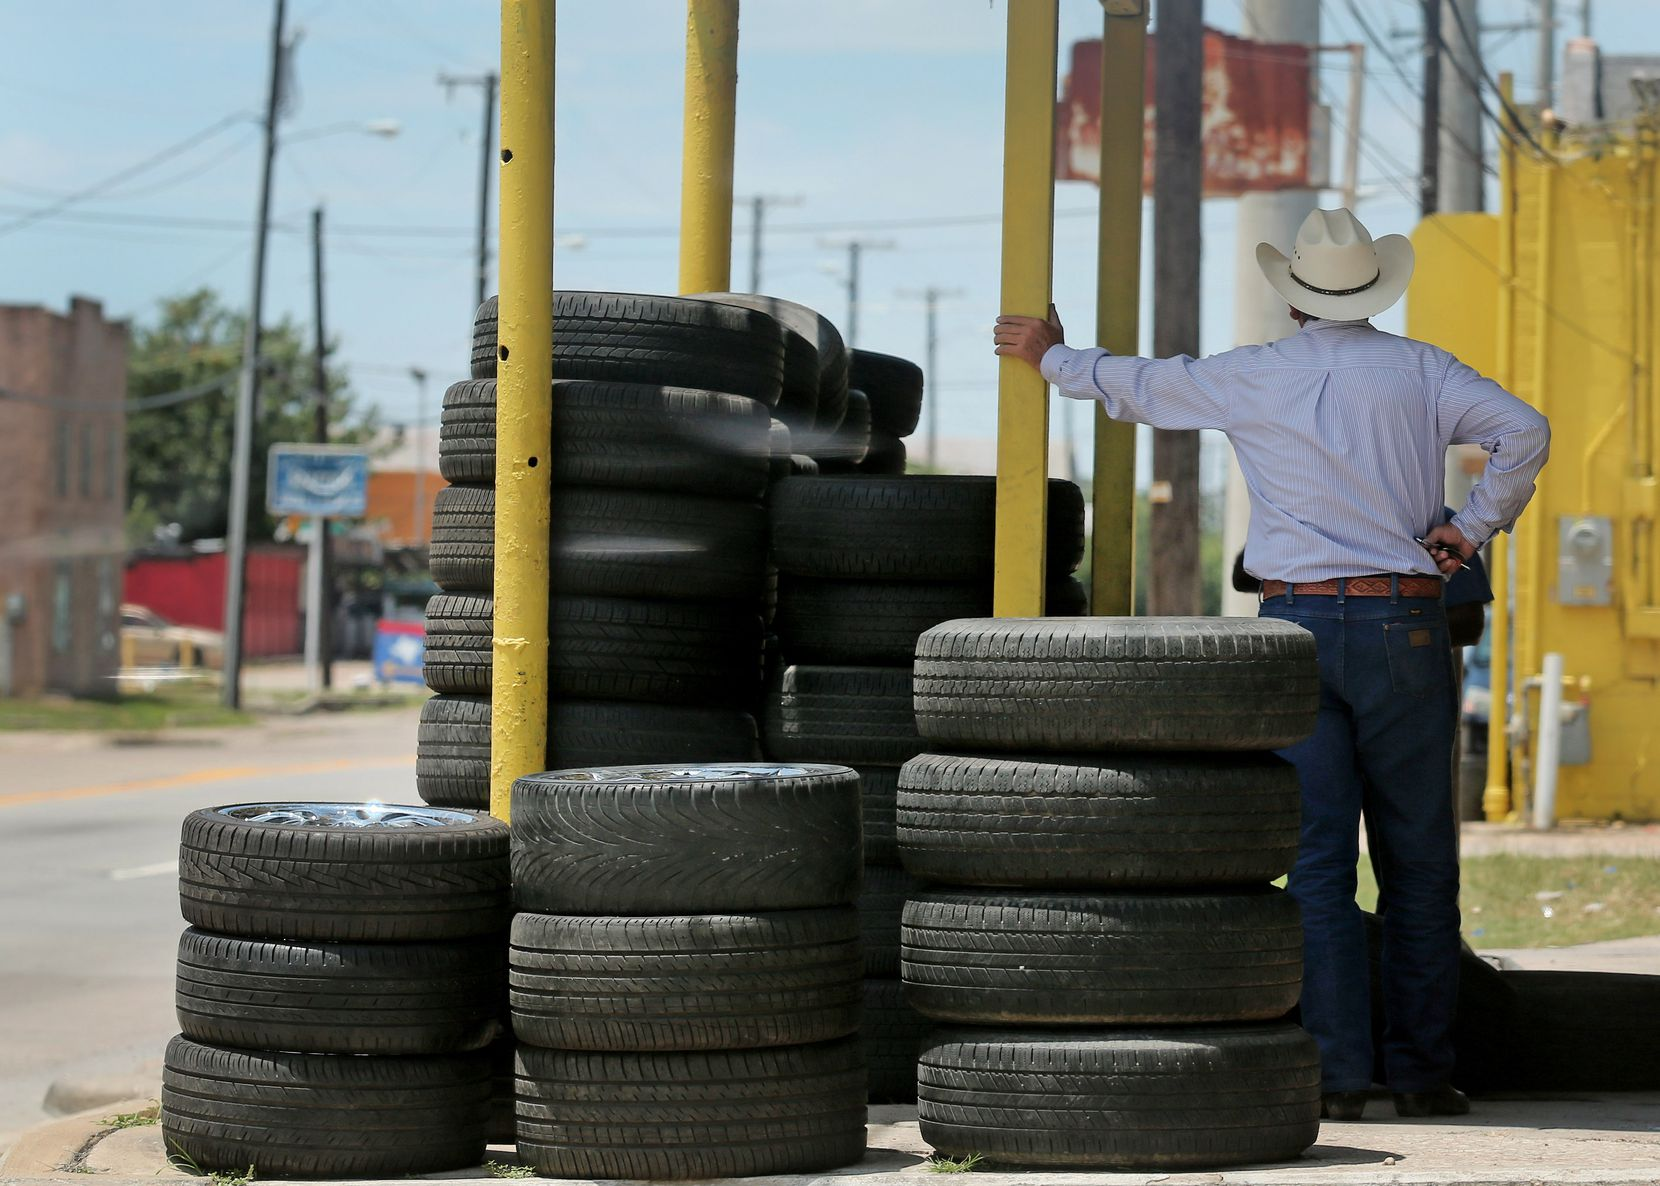 A tire shop employee awaits customers on Singleton Boulevard in West Dallas.